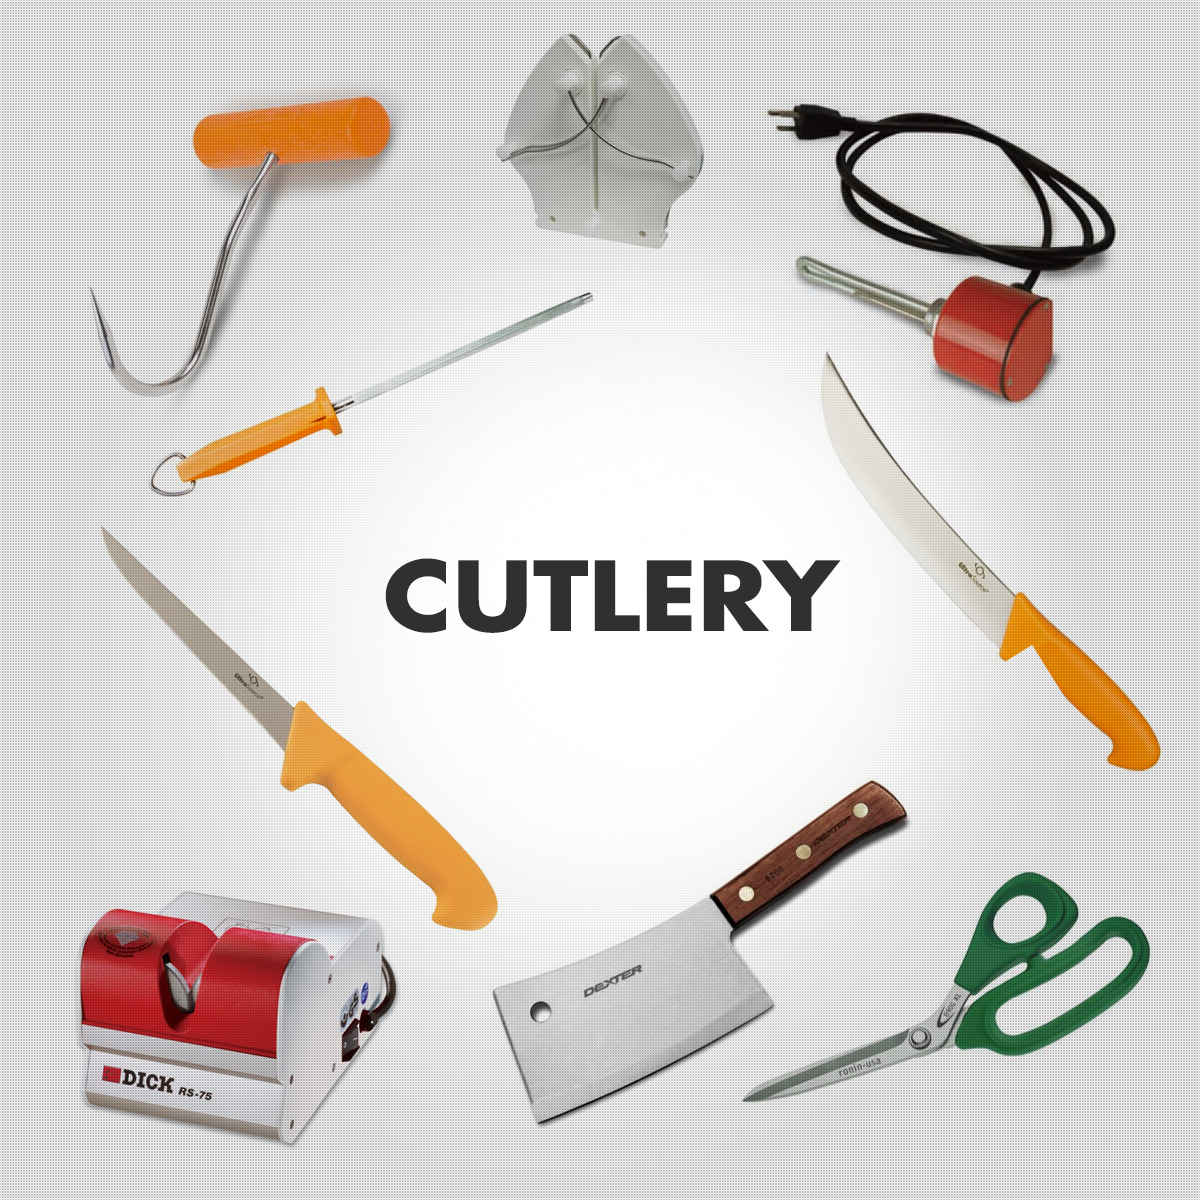 Cutlery - Meat Hooks, Boning, Breaking & Butcher Knives and Sharpeners